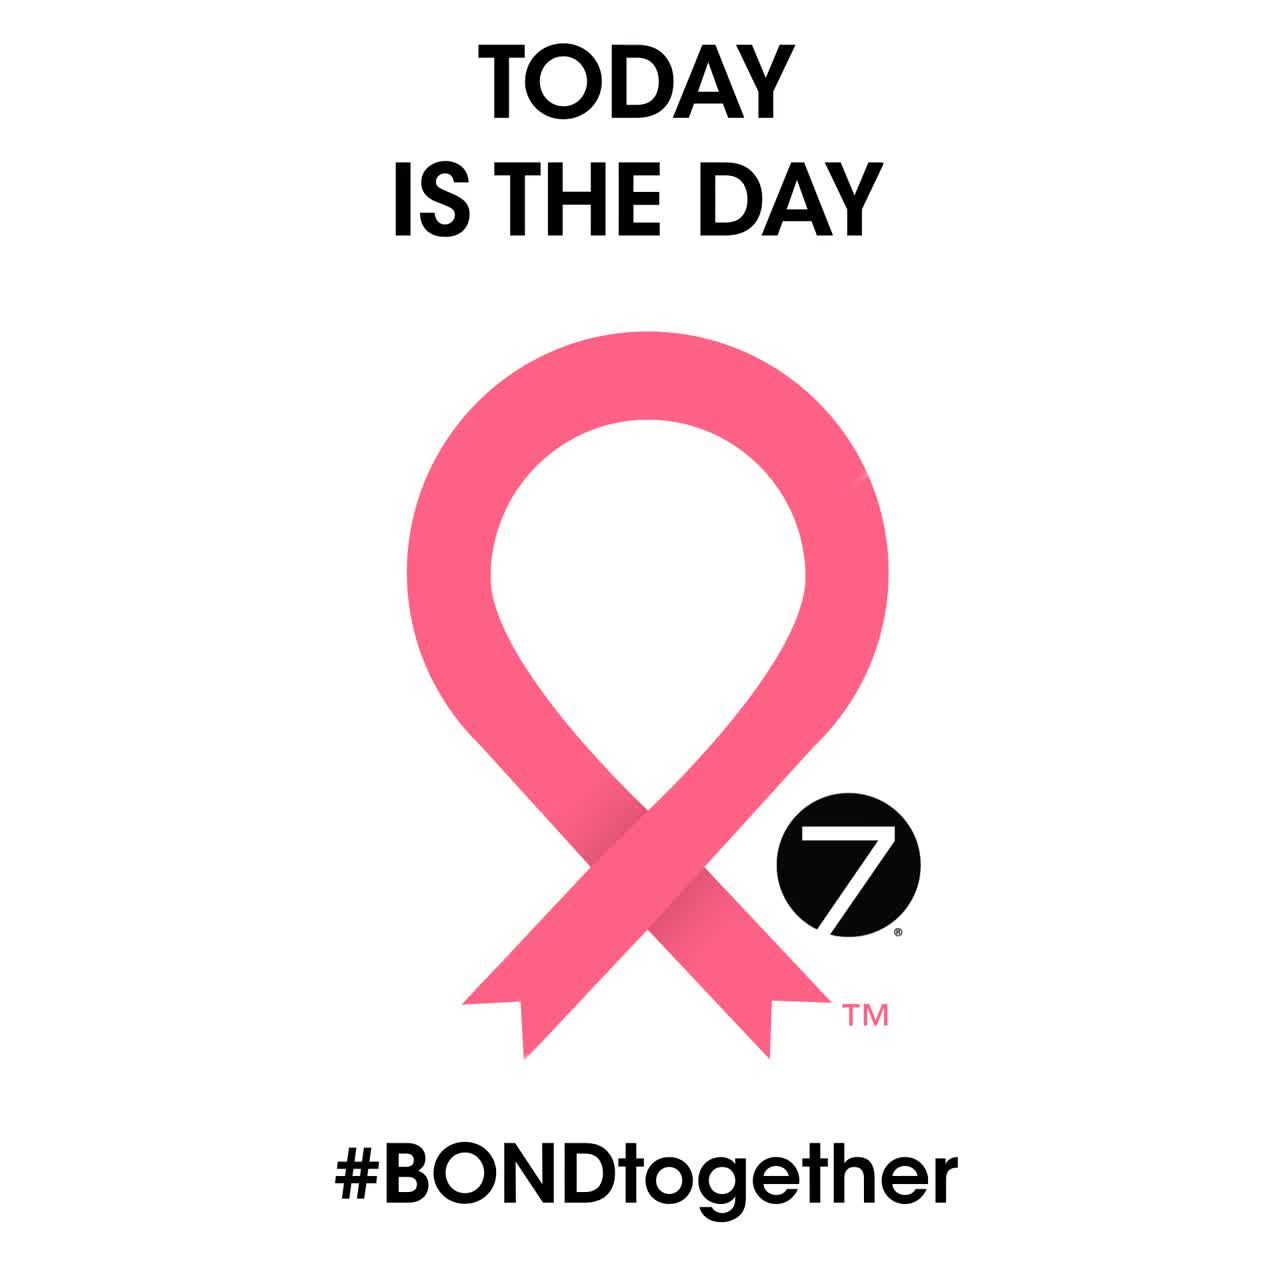 Today is the last day of our 2019 #BONDtogether drive! 10% of the net proceeds from any Kente BOND product to National Breast Cancer Foundation, Inc® (@nbcf)! Shop link in bio TODAY! . . . #BONDtogether #BONDwithSeven #BONDaid #BCA #NBCF @nbcf #helpingwomennow #breastcancerawareness #nationalbreastcancerfoundation #thinkpink #fcancer #sevencares